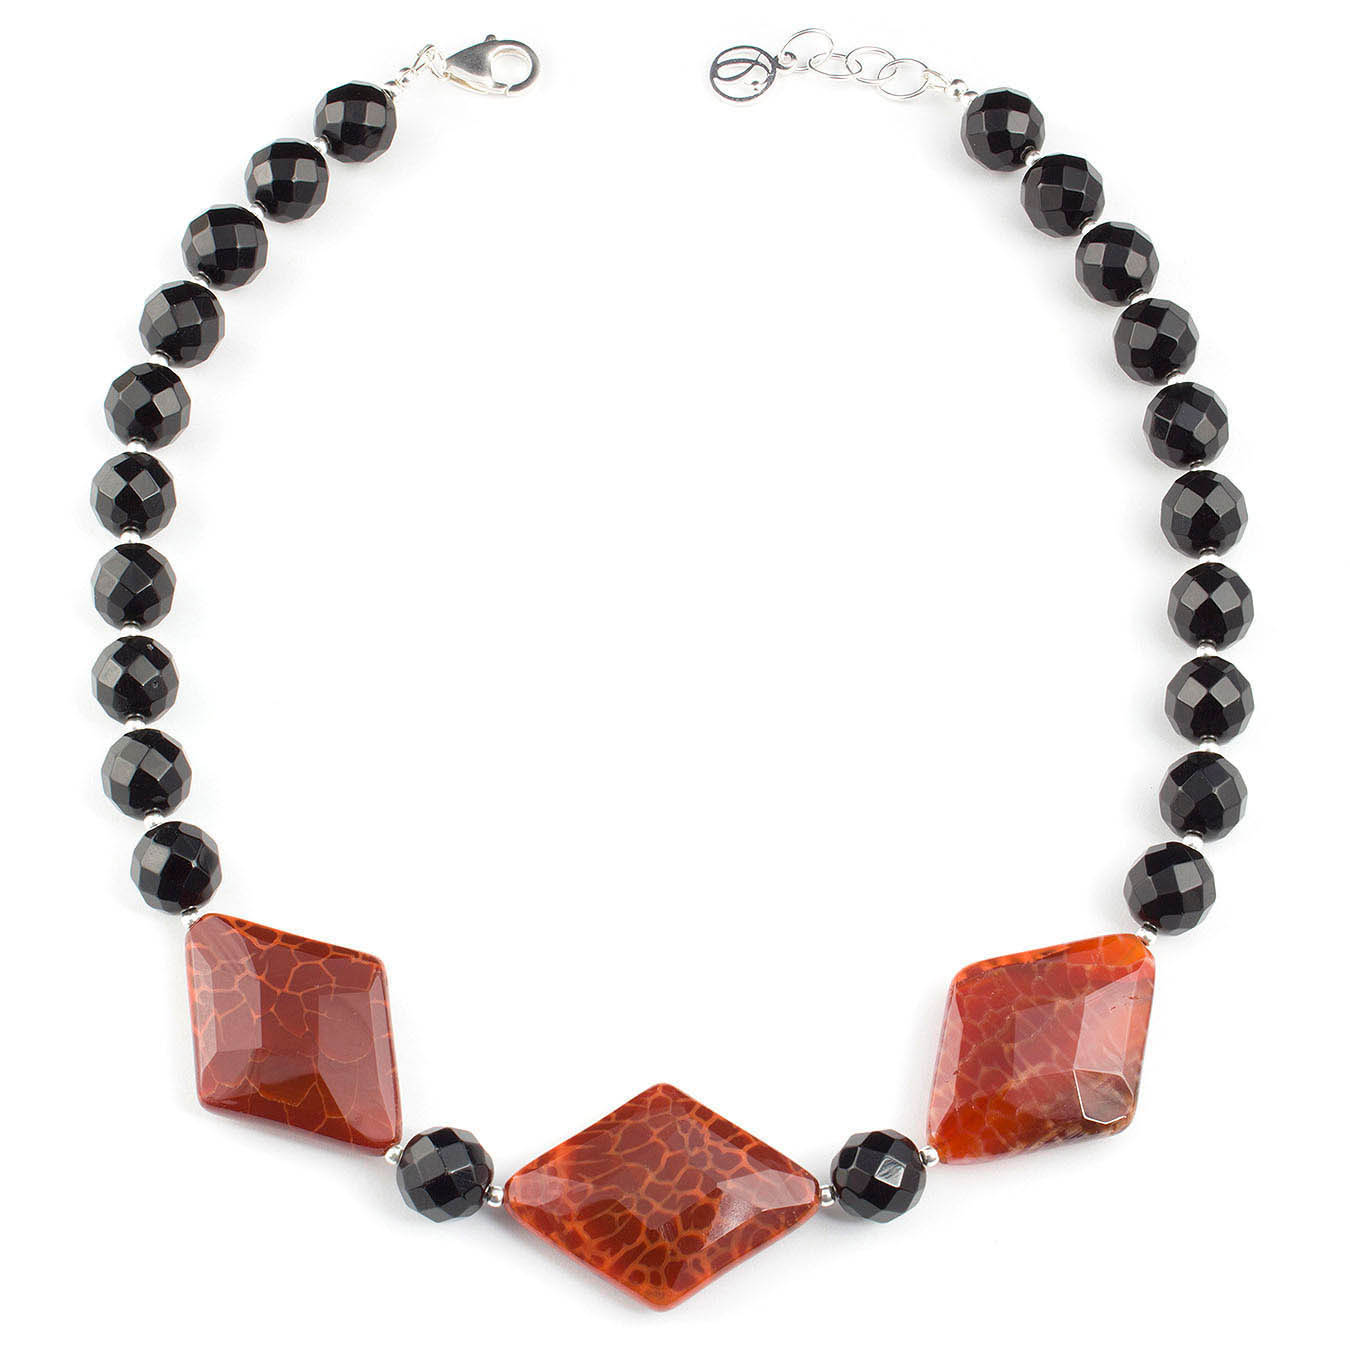 Collar necklace set made with faceted black and red fire agate stones